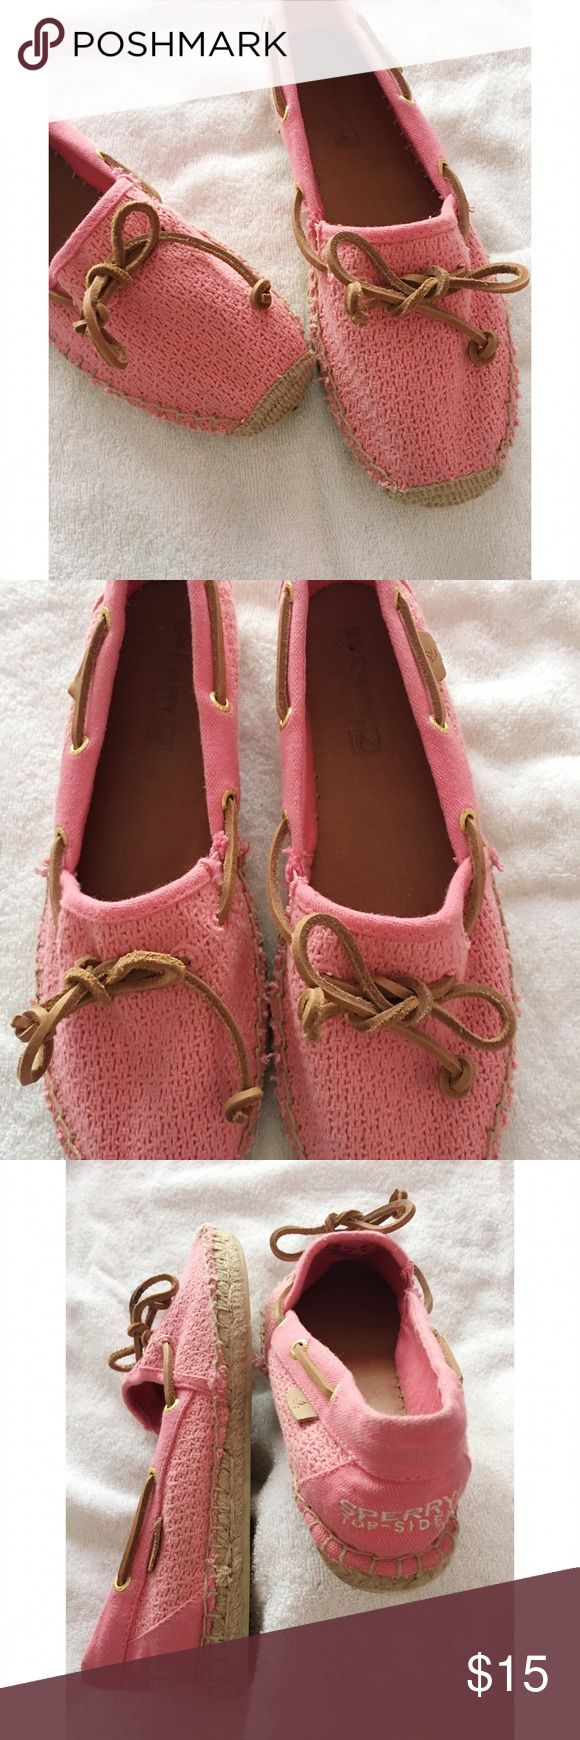 Sperry Top-Siders This pair of Sperry Top-Siders are in great condition and are a size 8. They have a leather tie and cute fabric tops. Soles are in great condition. Sperry Top-Sider Shoes Flats & Loafers